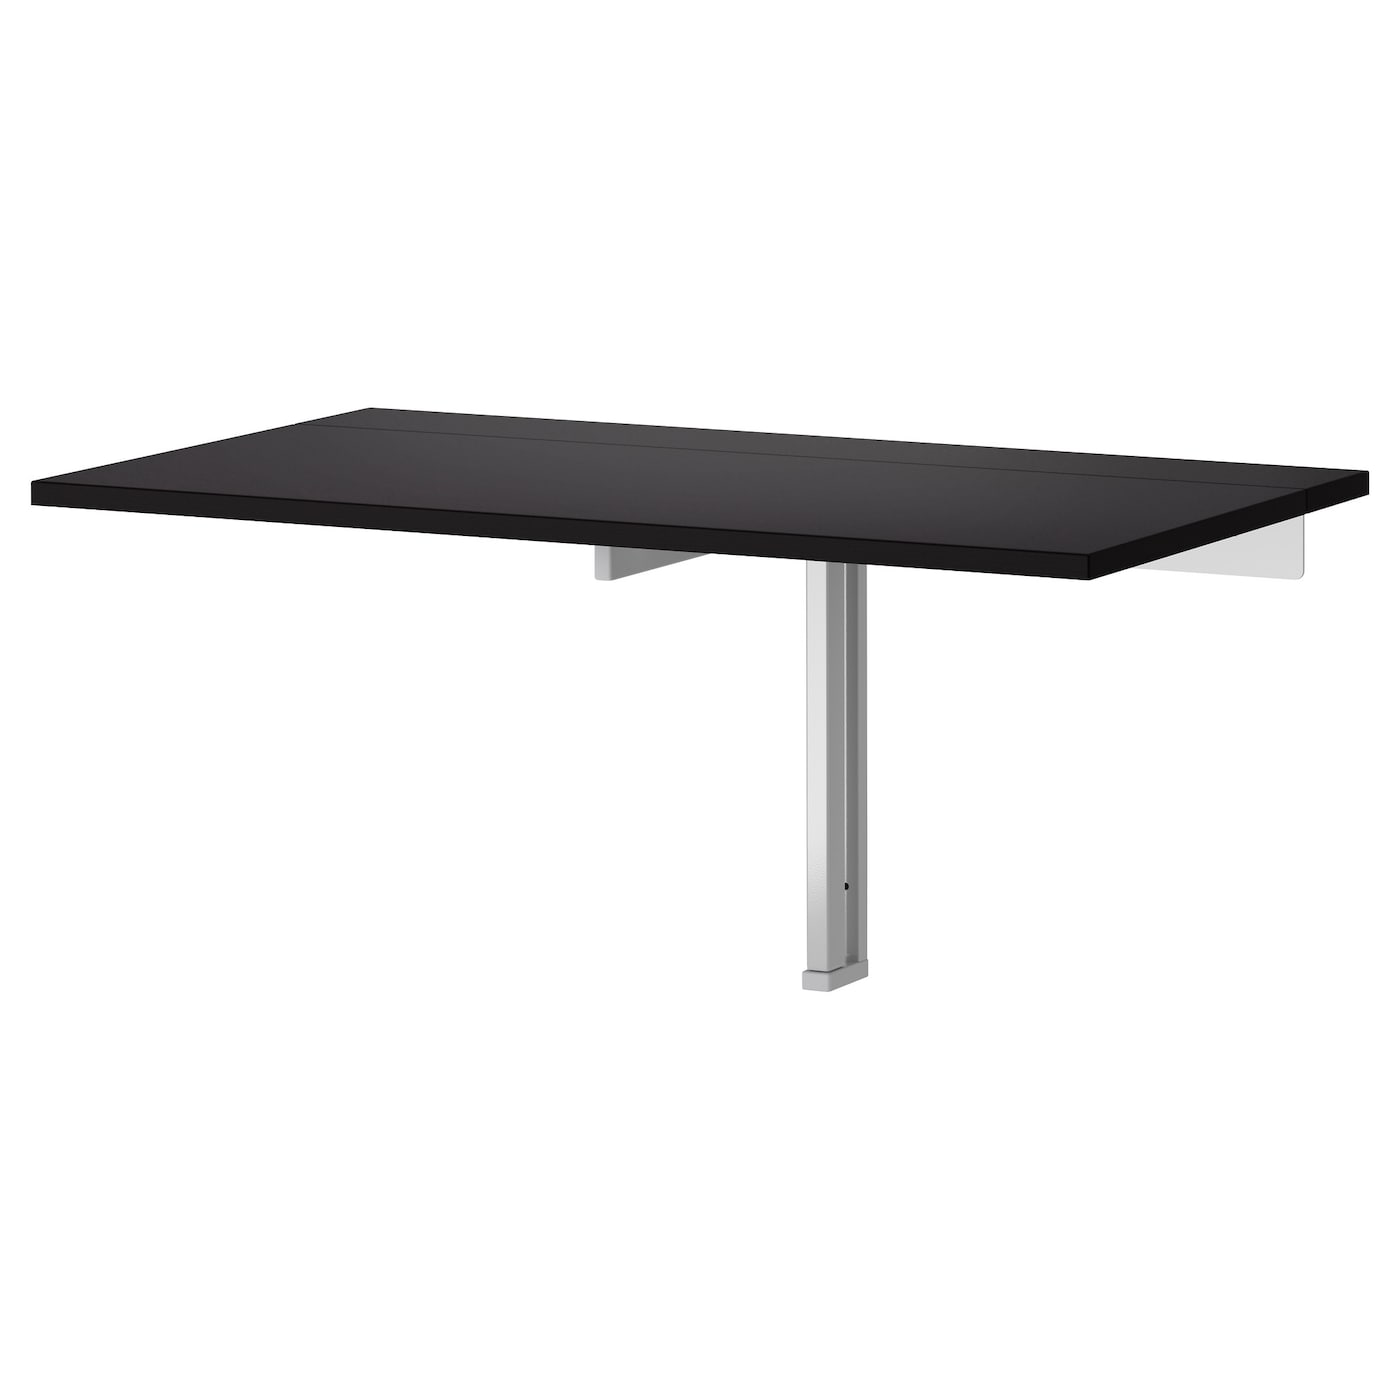 IKEA BJURSTA wall-mounted drop-leaf table The clear-lacquered surface is easy to wipe clean.